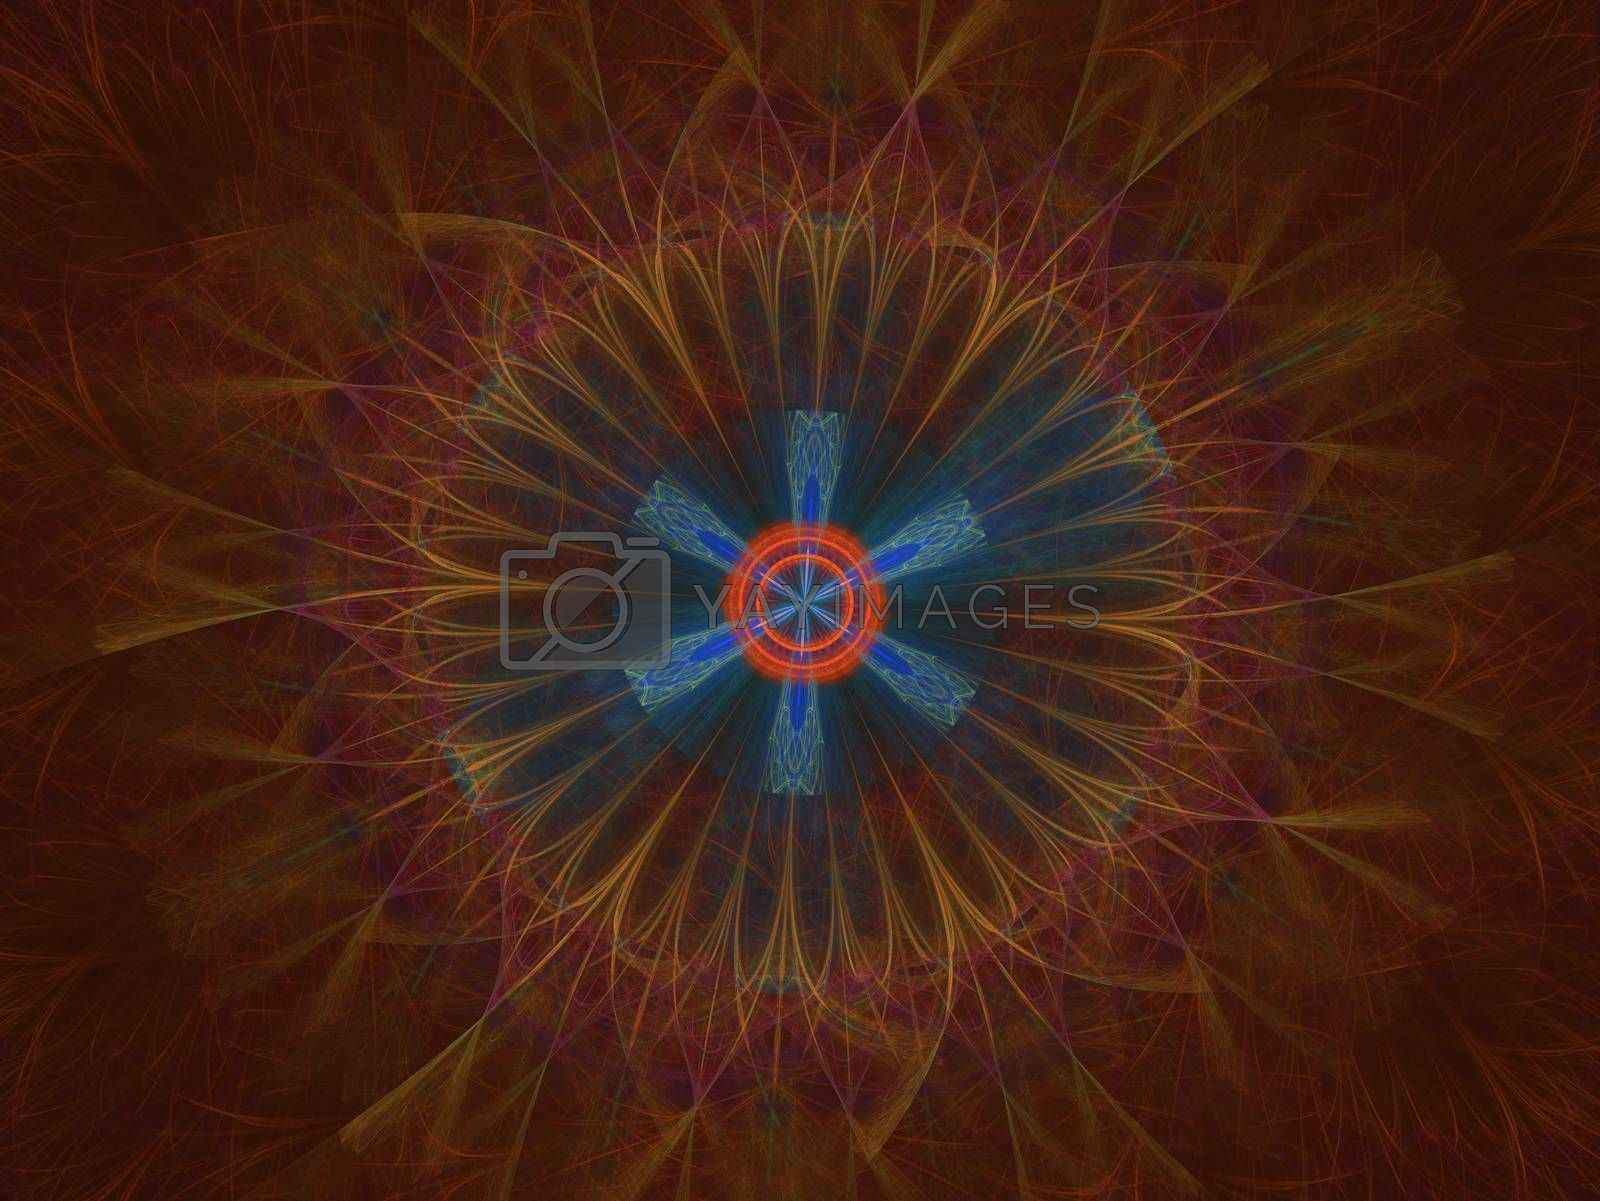 Cosmic geometry. Light phenomena in space. Flash and lightning in the languid air. Abstract fractal mandala illustration. The underlying processes in other galaxies.